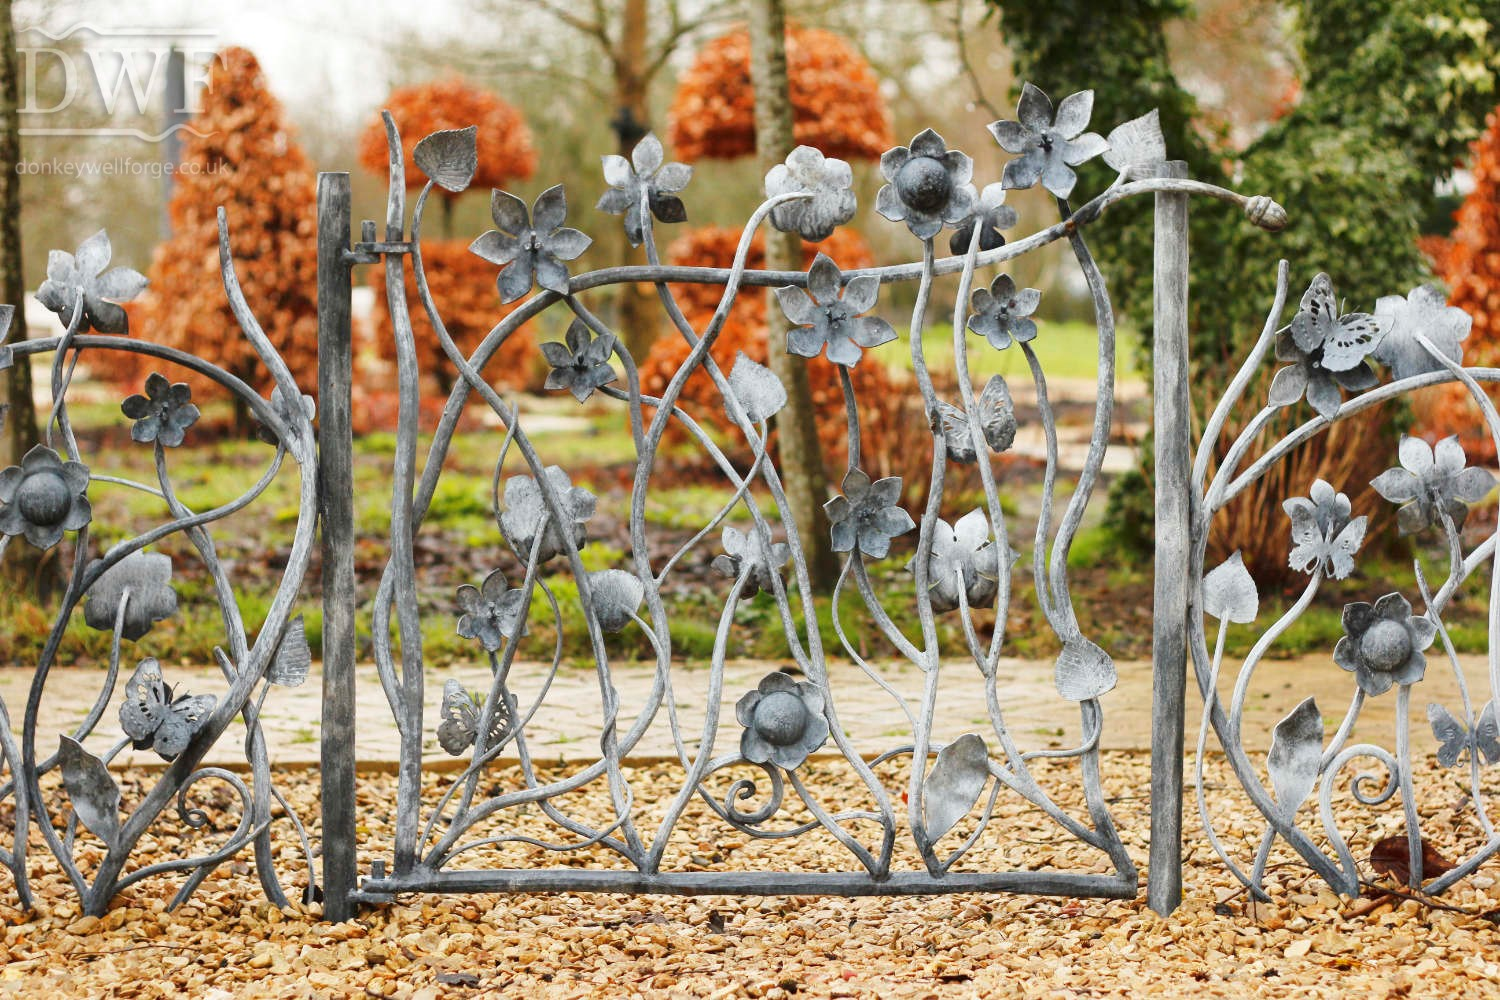 forged-artistic-floral-railings-gate-ironwork-patinated-donkeywell-forge